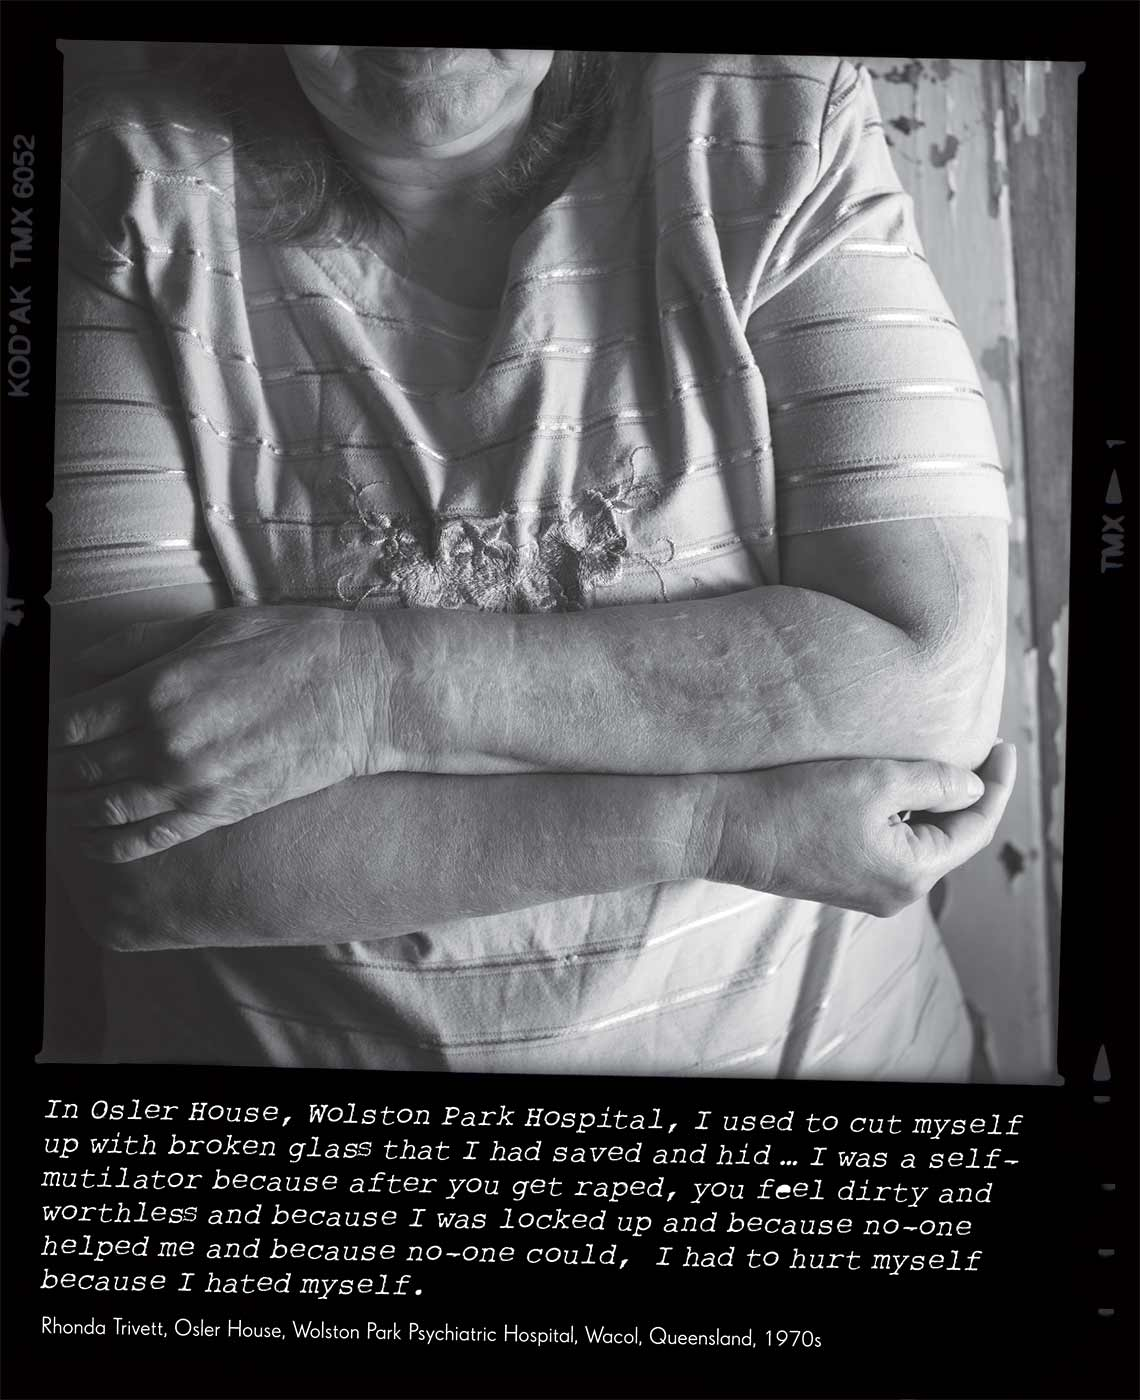 Black and white photo of a woman. She is standing with her arms folded and her face is not visible. The photo caption reads 'In Osler House, Wolston Park Hospital, I used to cut myself up with broken glass that I had saved and hid ... I was a self-mutilator because after you get raped, you feel dirty and worthless and because I was locked up and because no-one helped me and because no-one could, I had to hurt myself because I hated myself' attributed to 'Rhonda Trivett, Osler House, Wolston Park Psychiatric Hospital, Wacol, Queensland, 1970s'. - click to view larger image